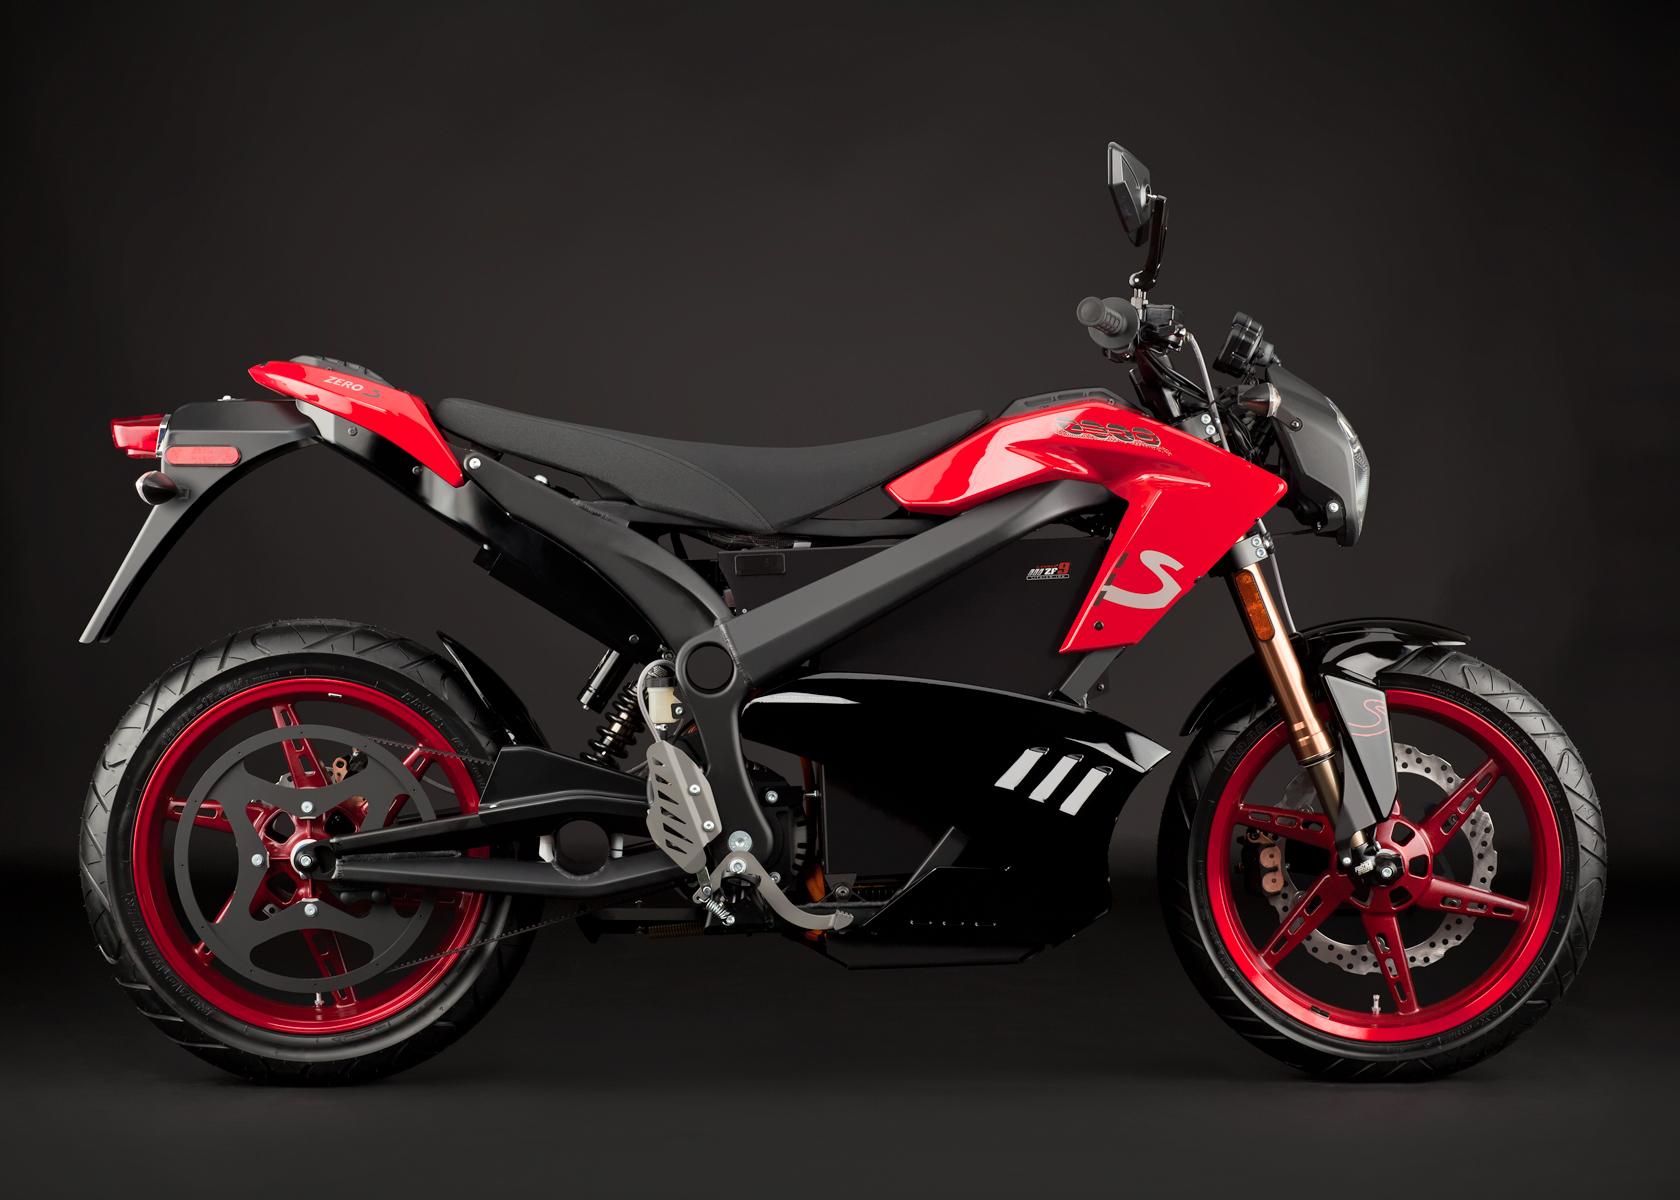 2012 Zero S Electric Motorcycle: Red Angle Right with Sidebags, Rear View